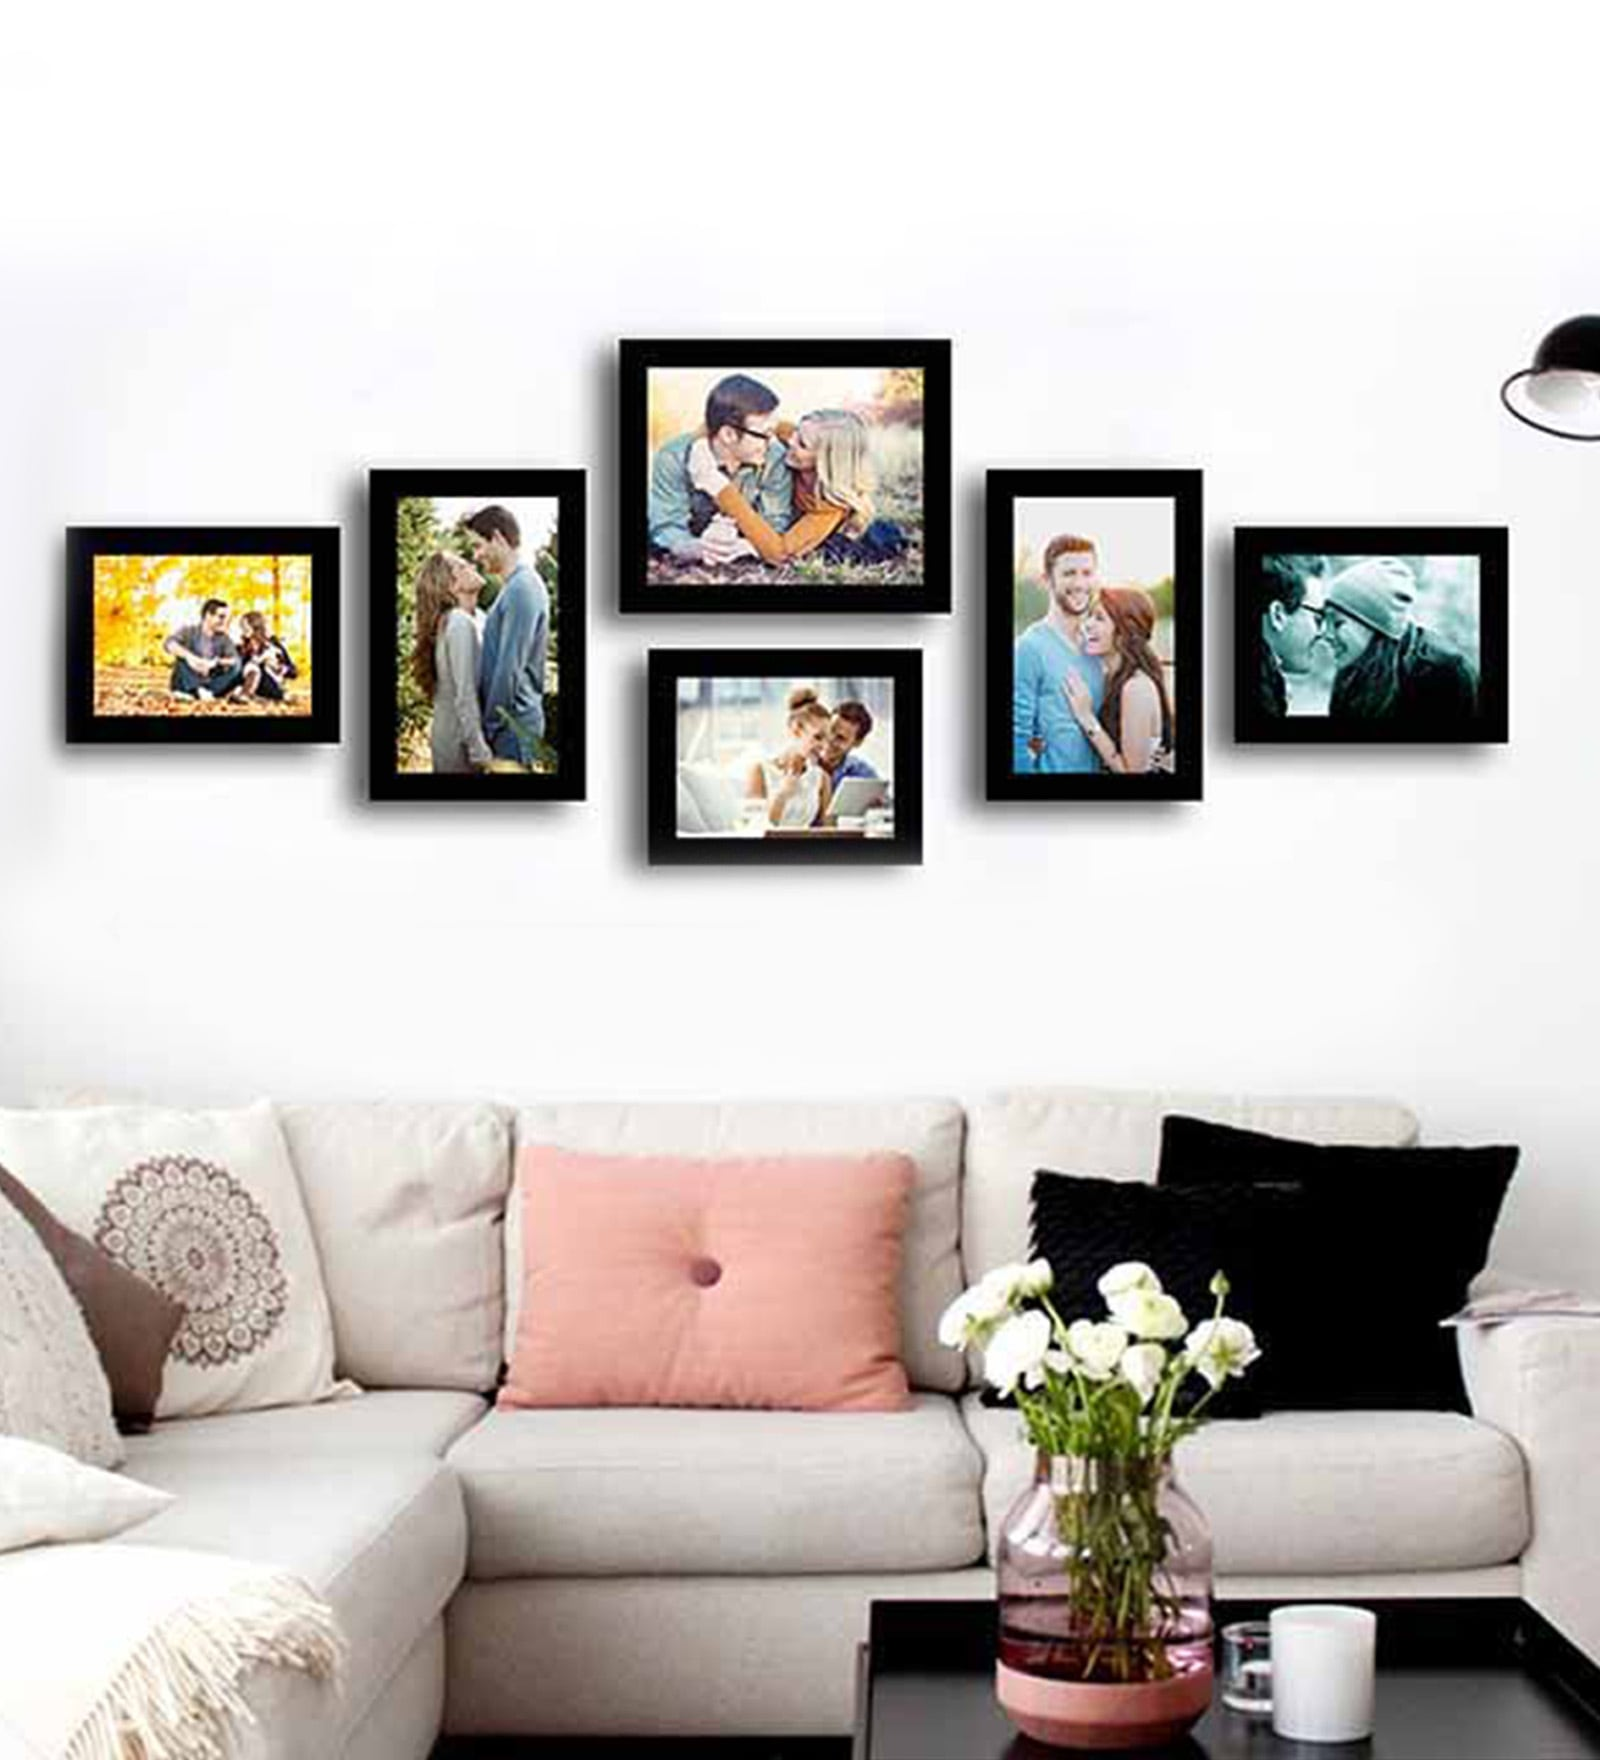 Black Fibre Wood Simple Straight Individual Wall Photo Frame - Set of 6 by Art Street